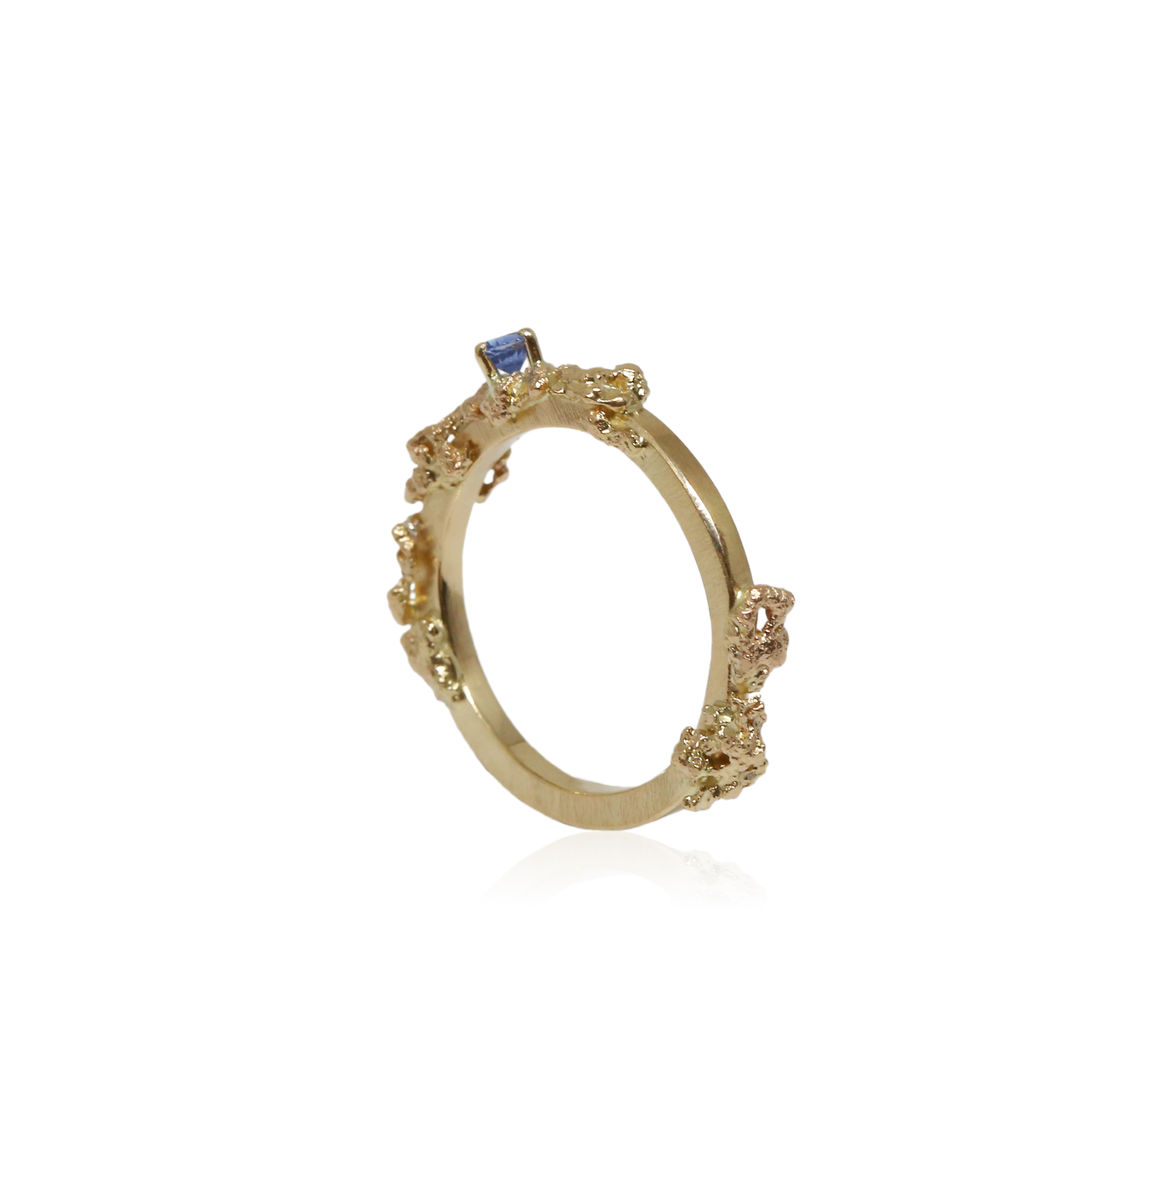 Out of the Sea Growth Ring in 14k gold with sapphire - product images  of